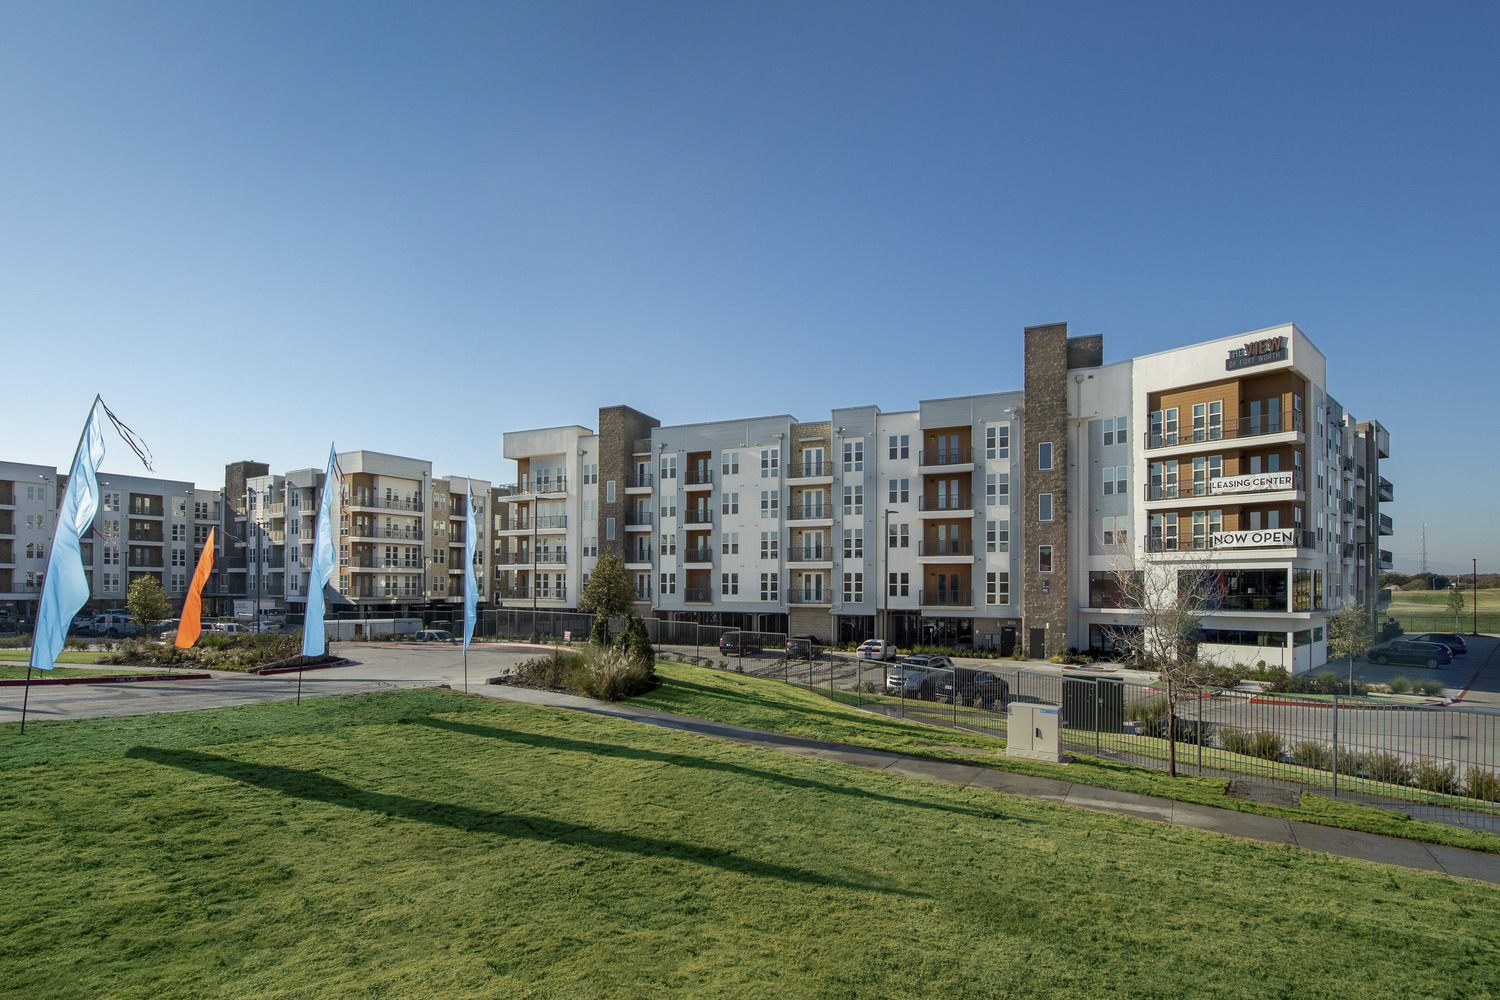 CBG builds The View of Fort Worth, a 300-Unit Apartment Community with Amenities in Fort Worth, TX - Image #7